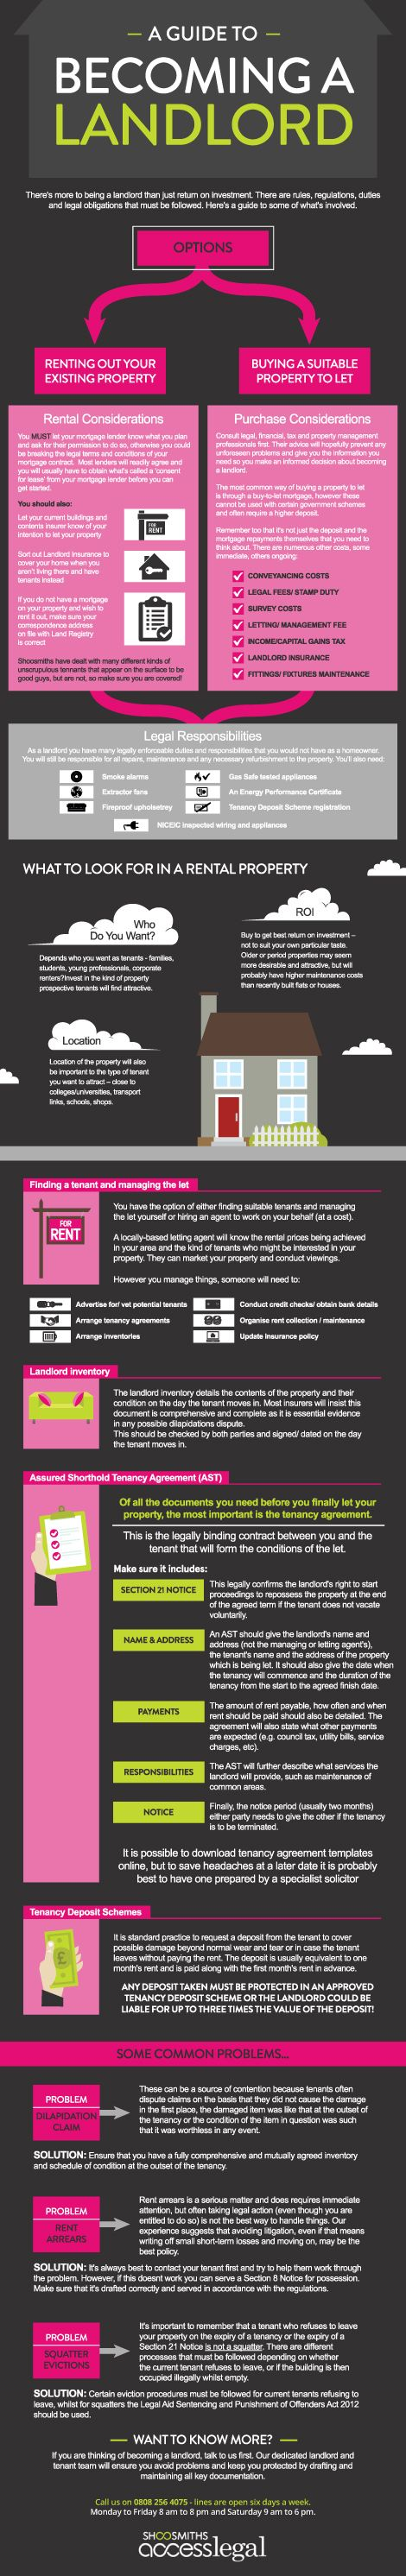 Infographic about how to become a landlord - great for those thinking of stepping into the rental property market!